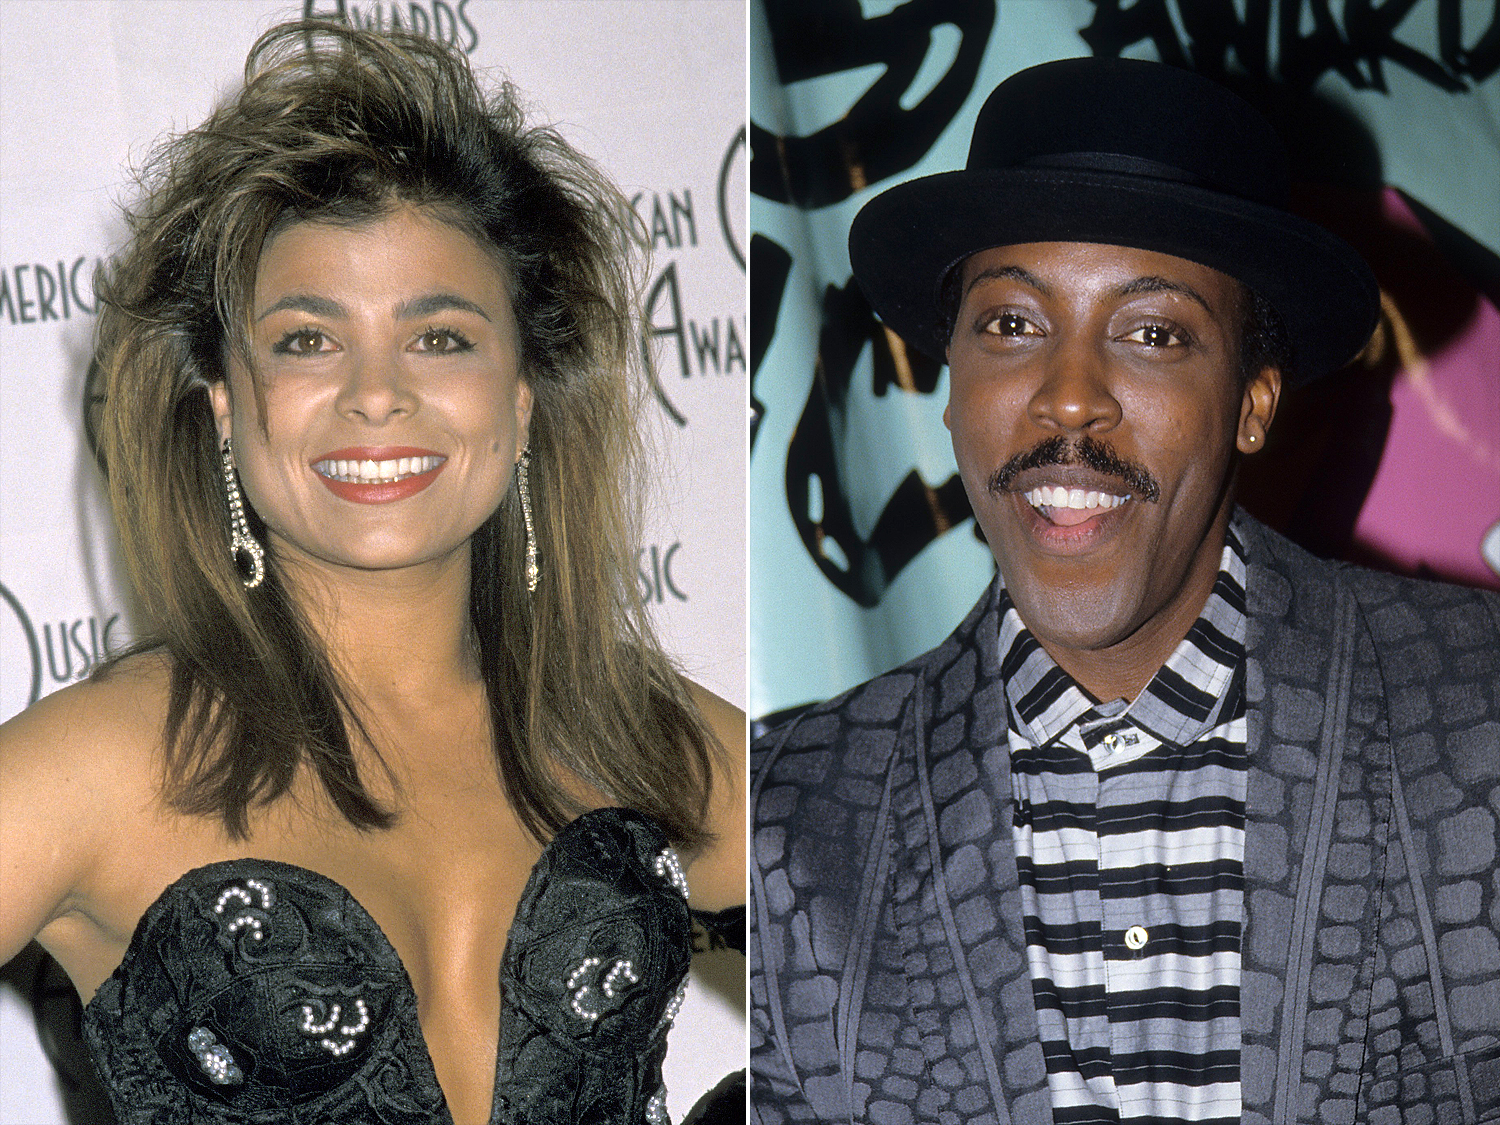 1989: PAULA ABDUL & ARSENIO HALL